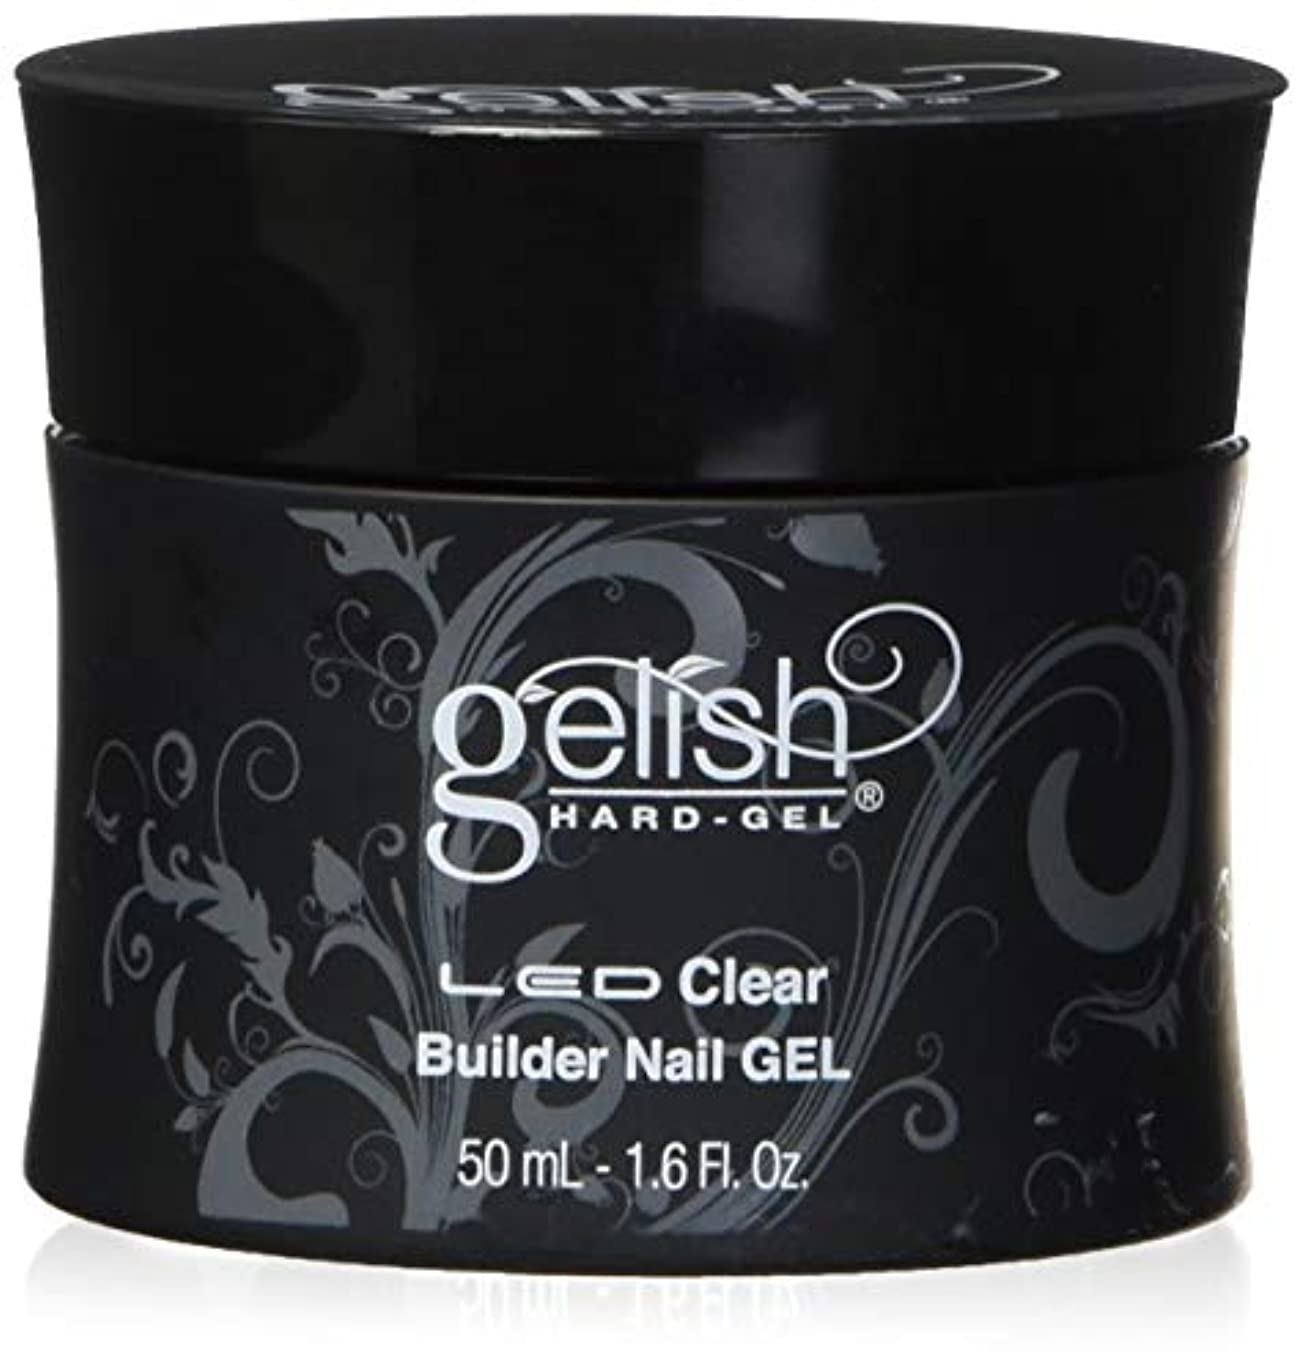 政権護衛小切手Harmony Gelish LED Hard Gel - Clear Builder - 1.6oz / 50ml